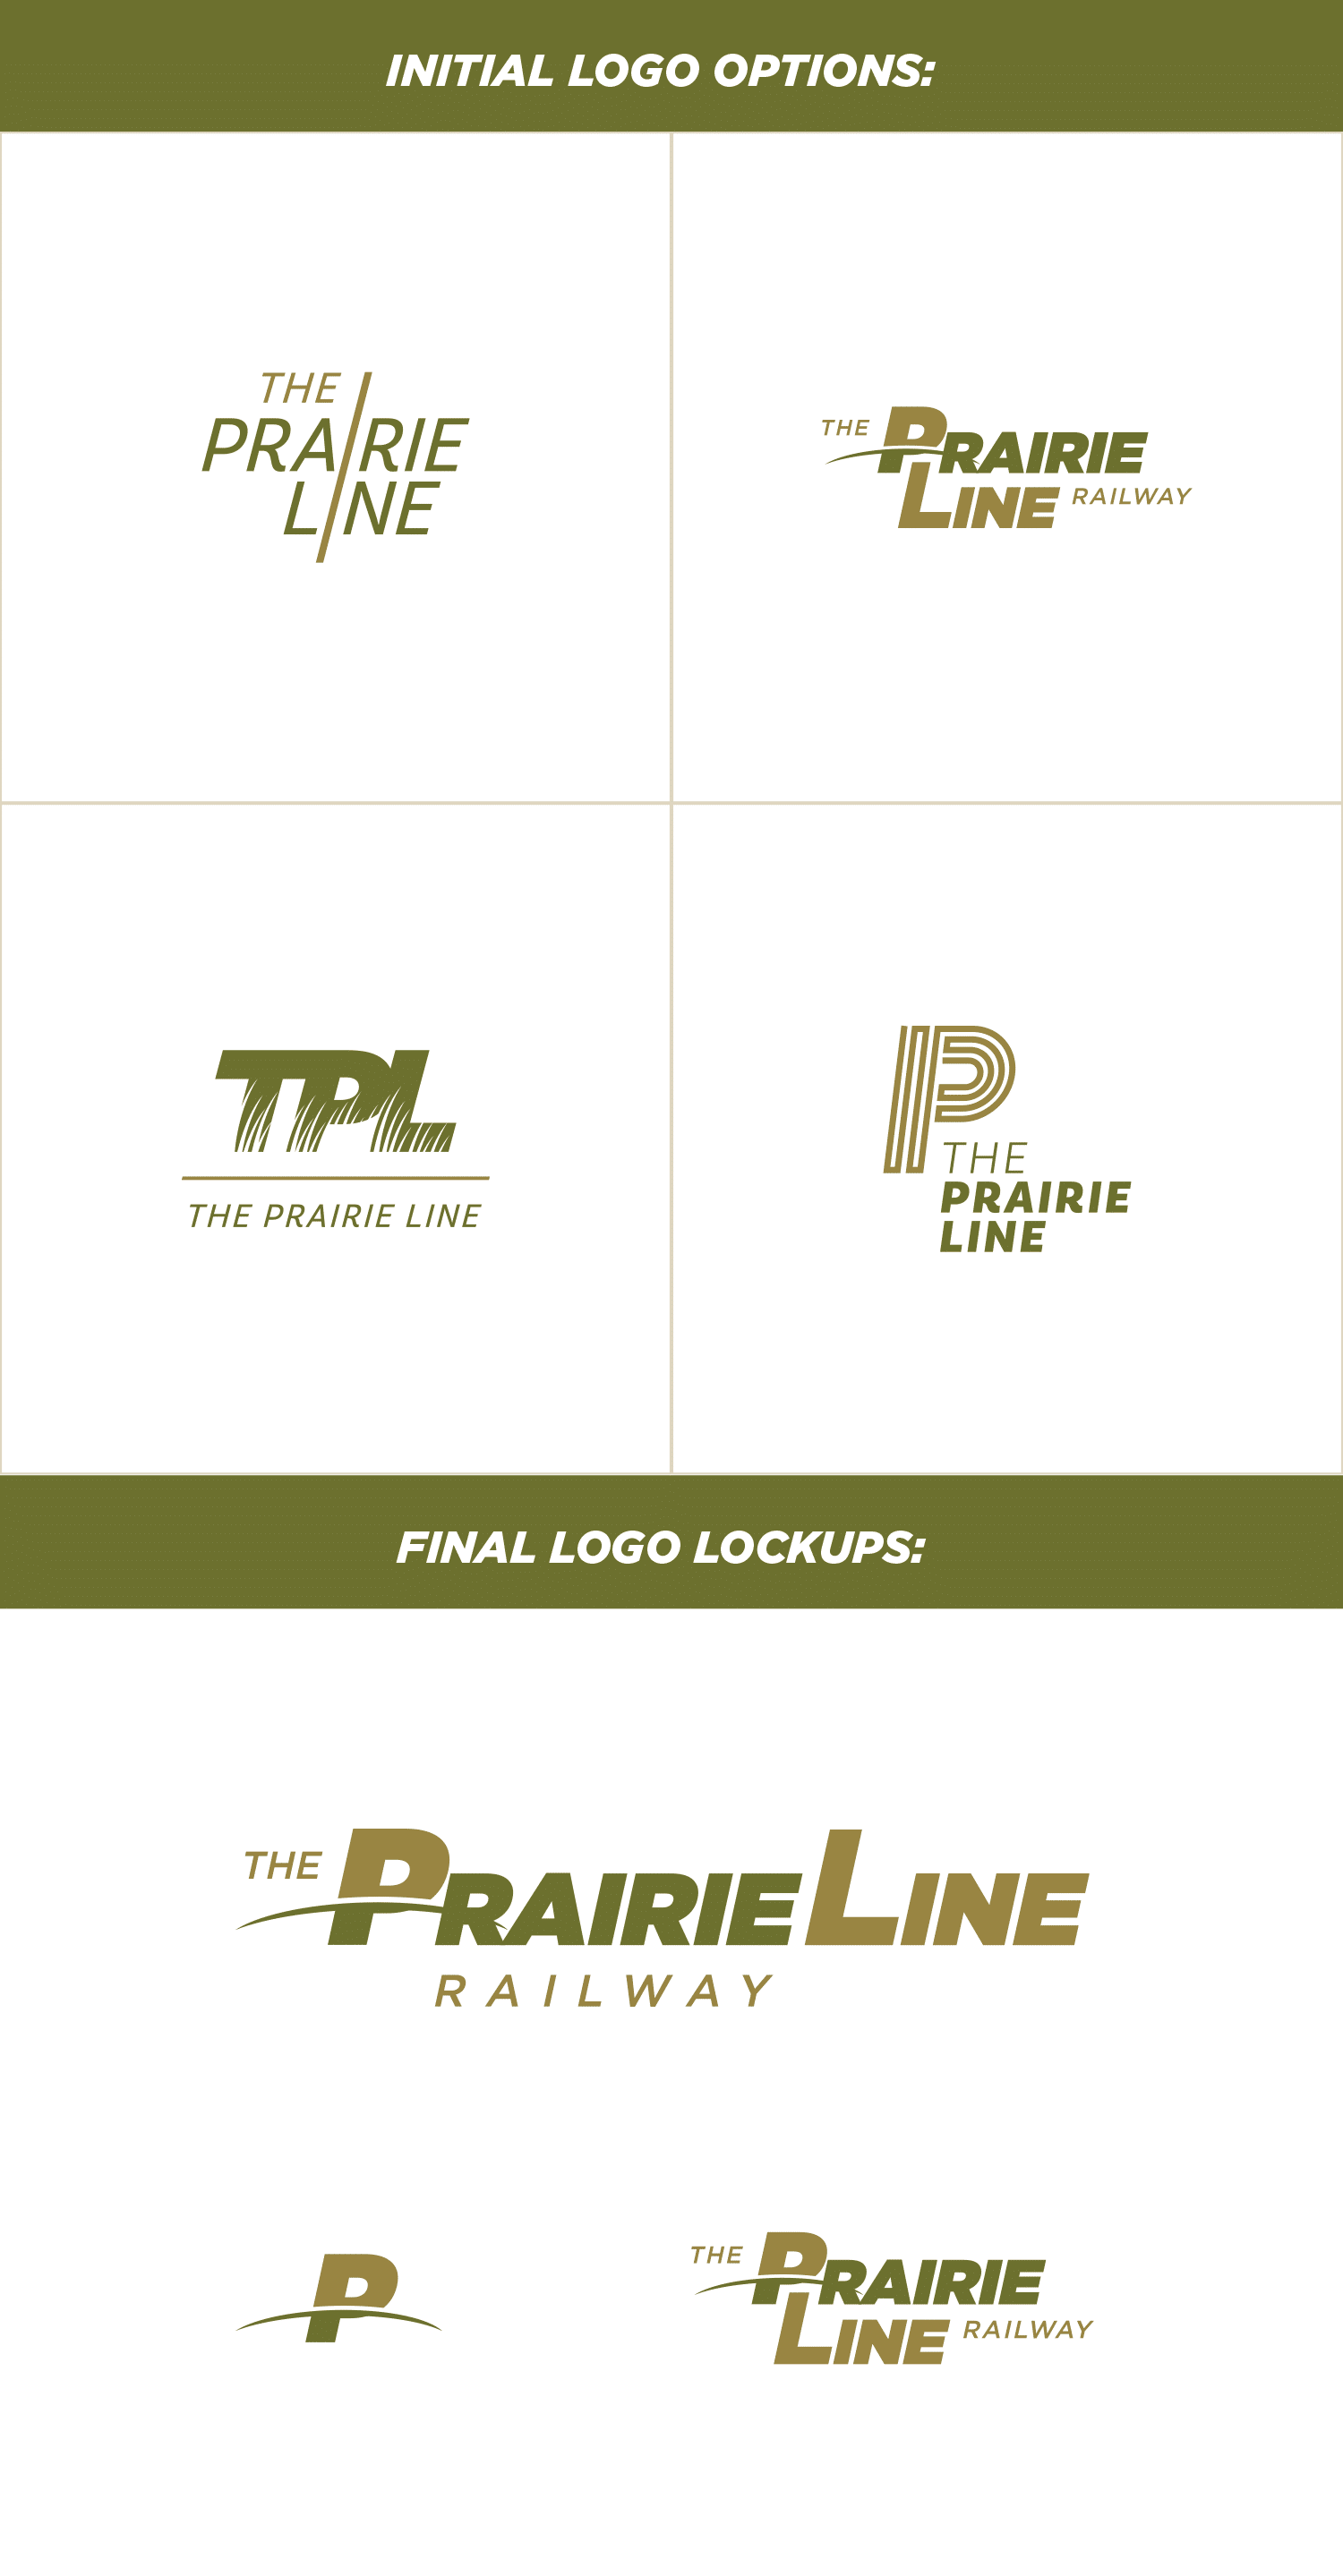 TPL logo options & final logo